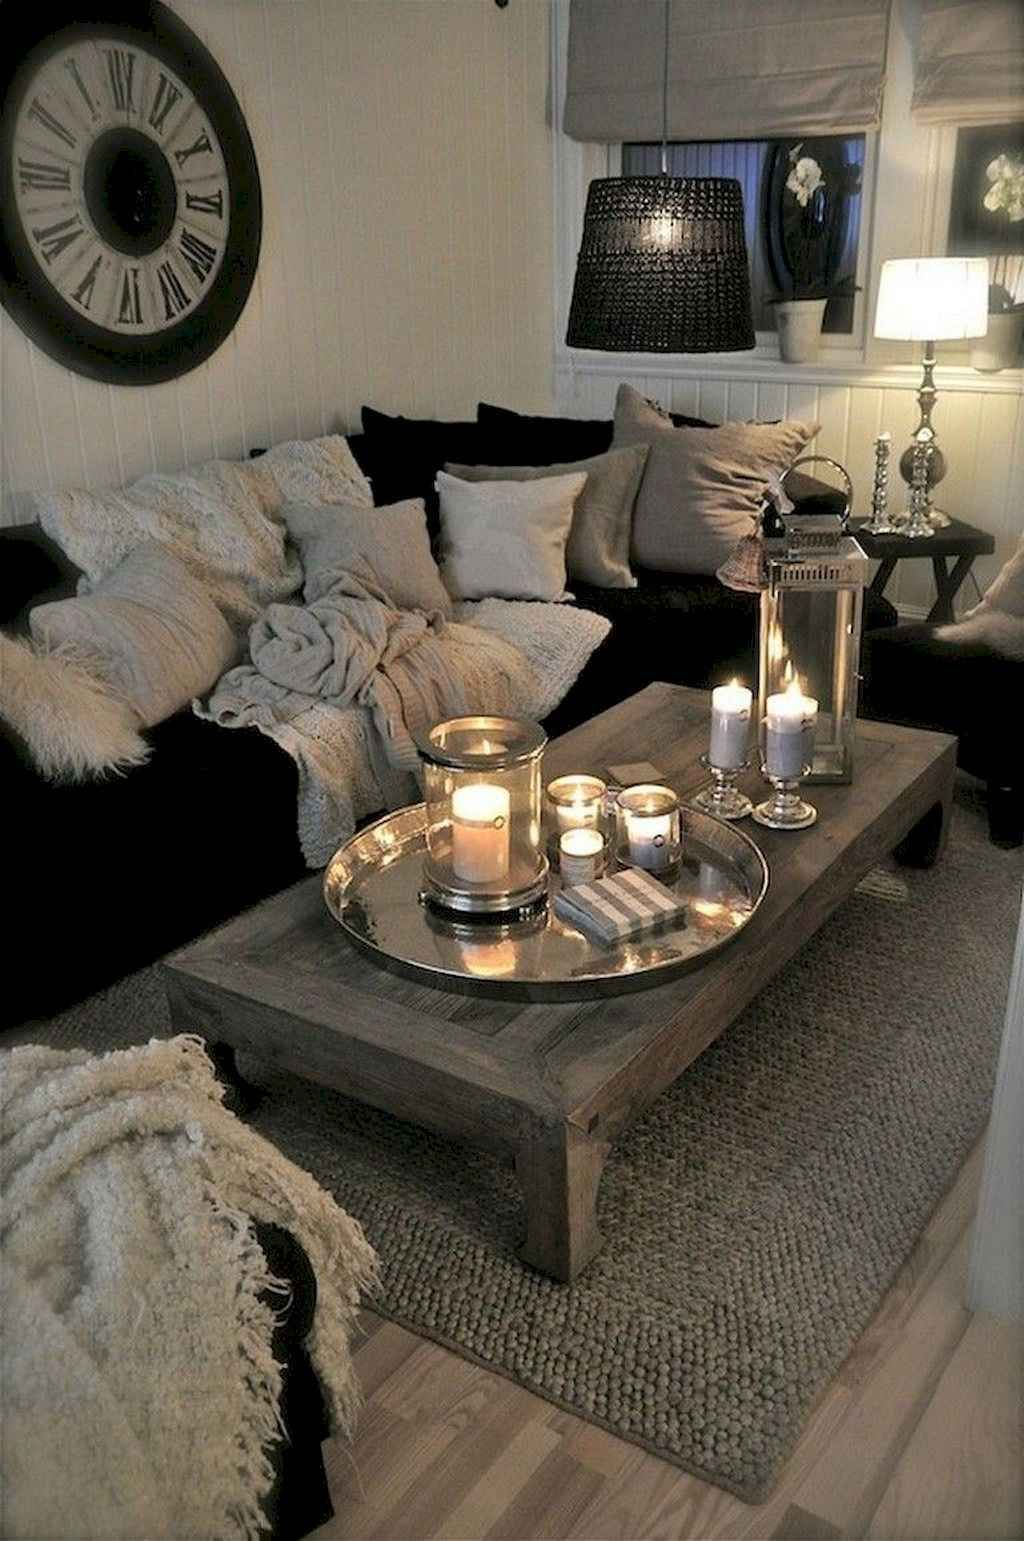 16 First Apartment Decorating Ideas On A Budget Gladecor Com Apartment Decorating Rental First Apartment Decorating Living Room Decor On A Budget